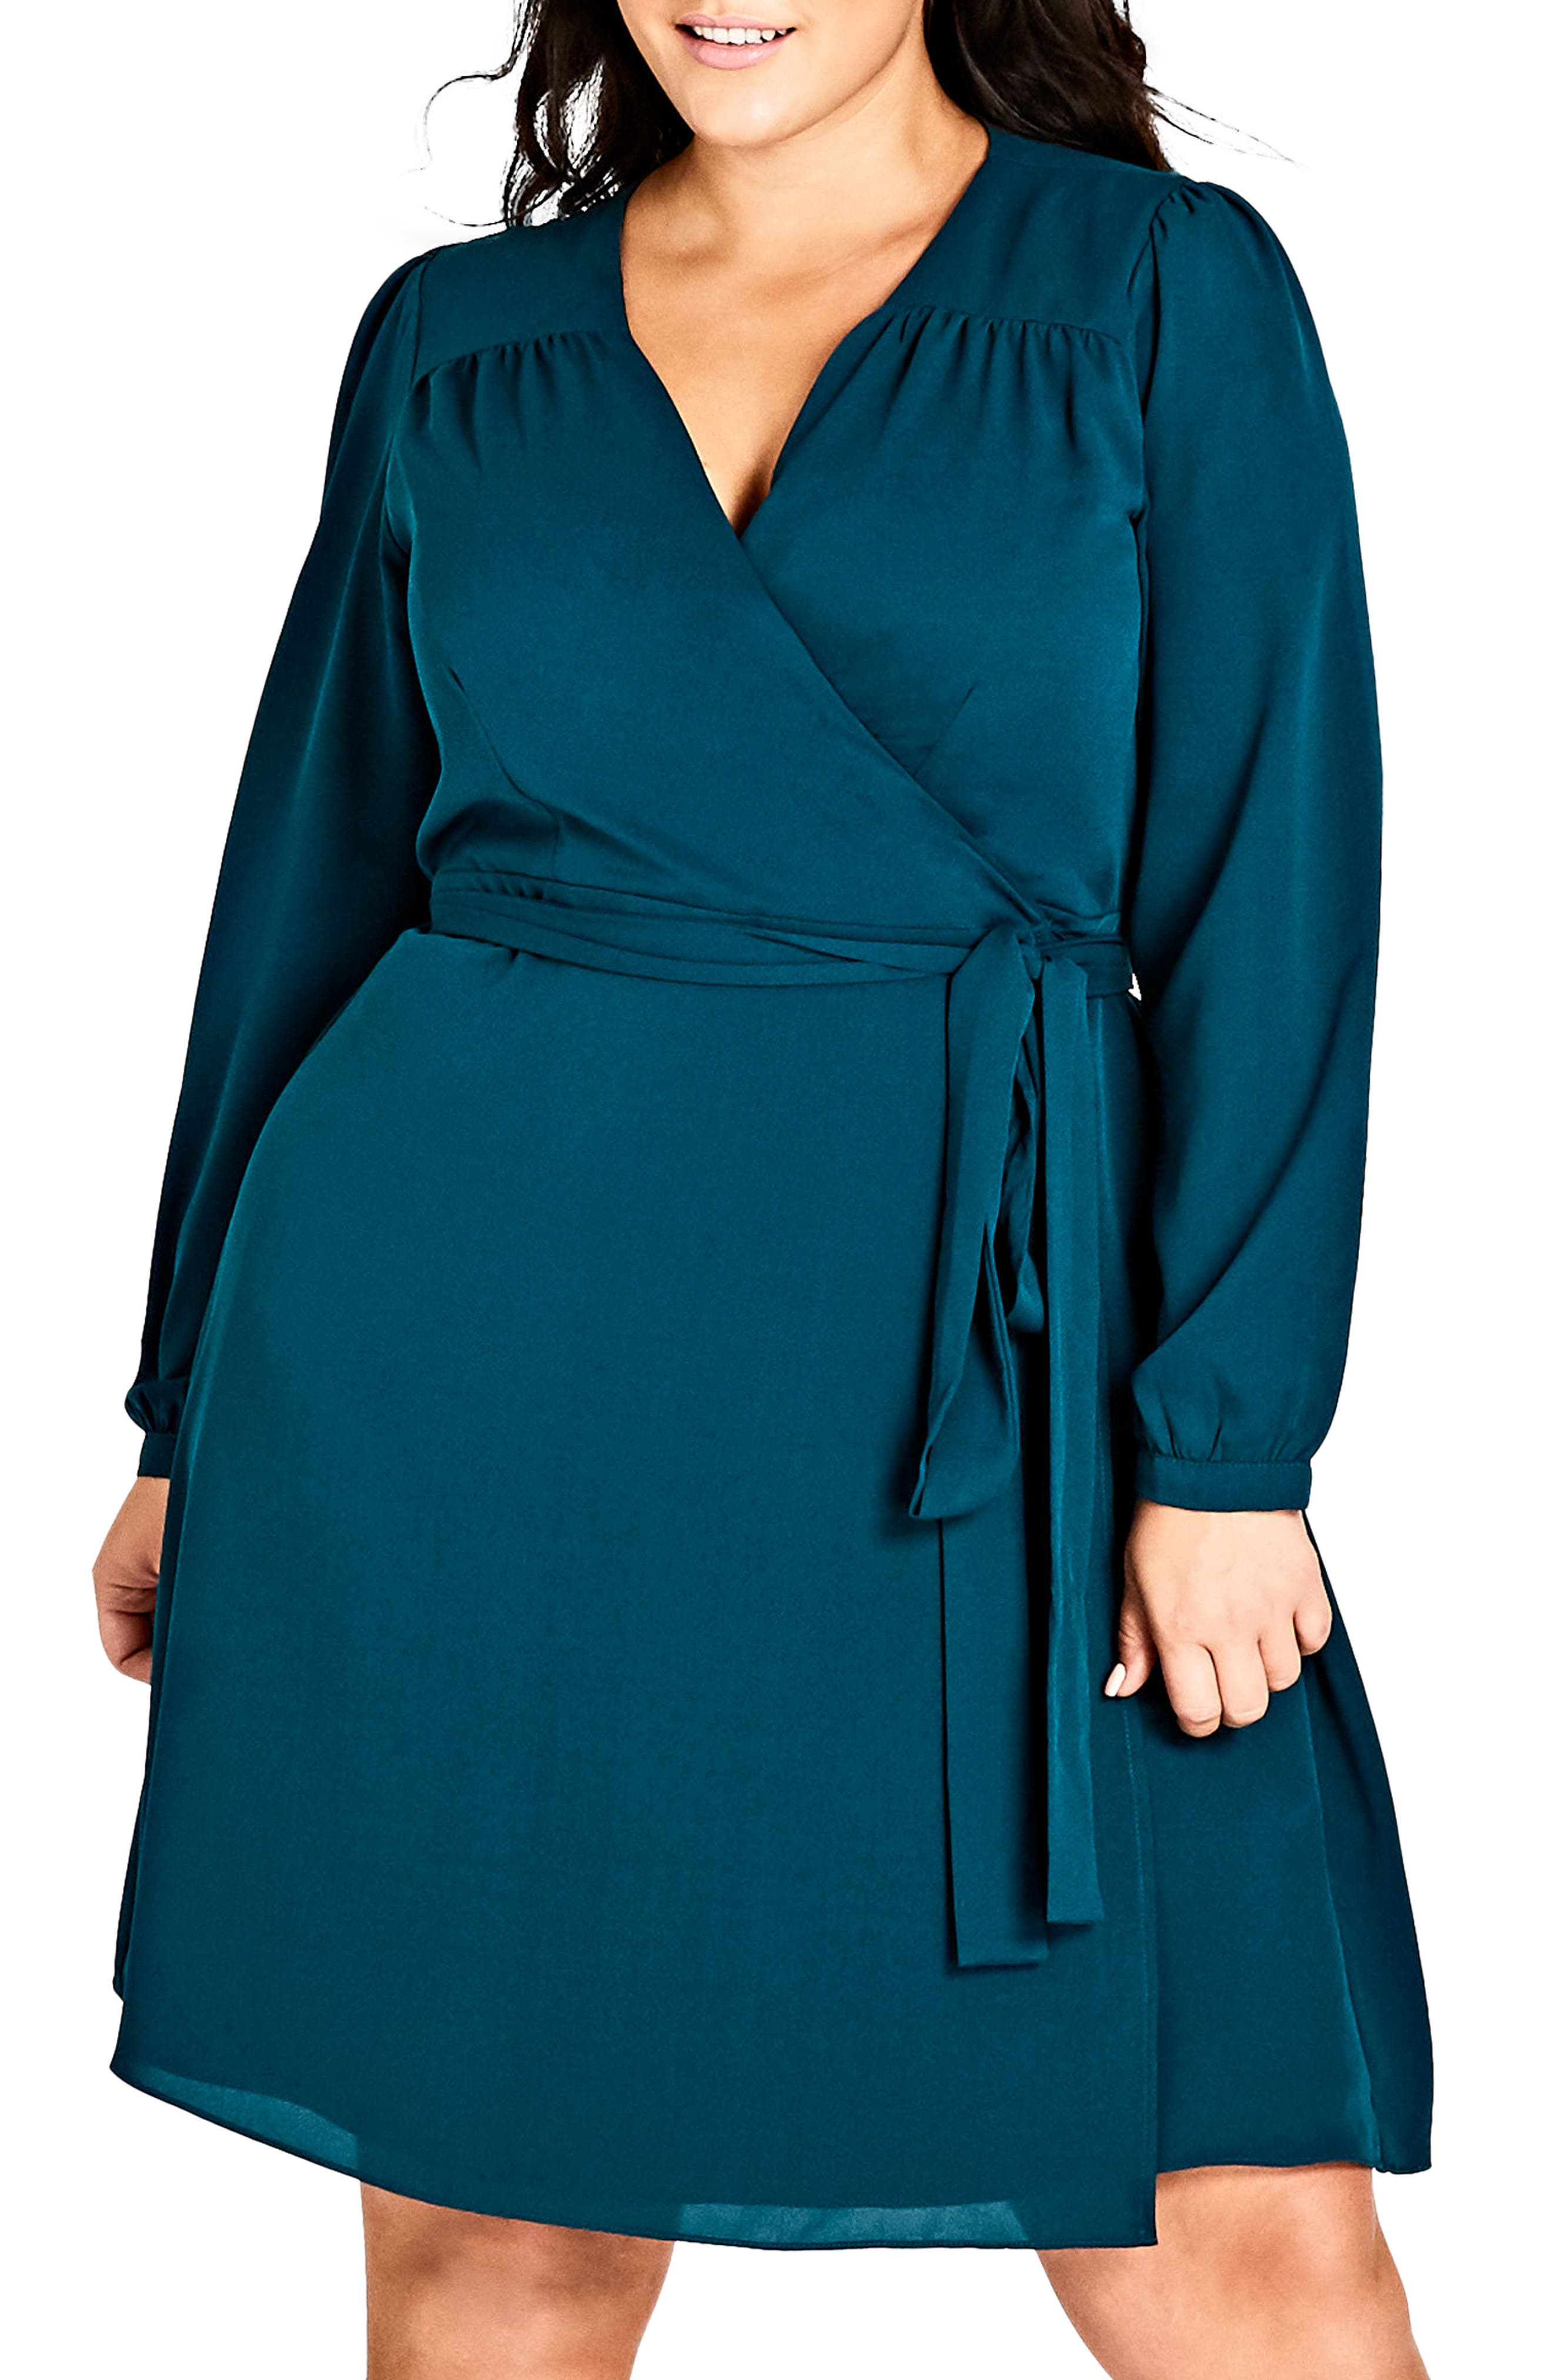 Mia Wrap Dress,                             Main thumbnail 1, color,                             EMERALD